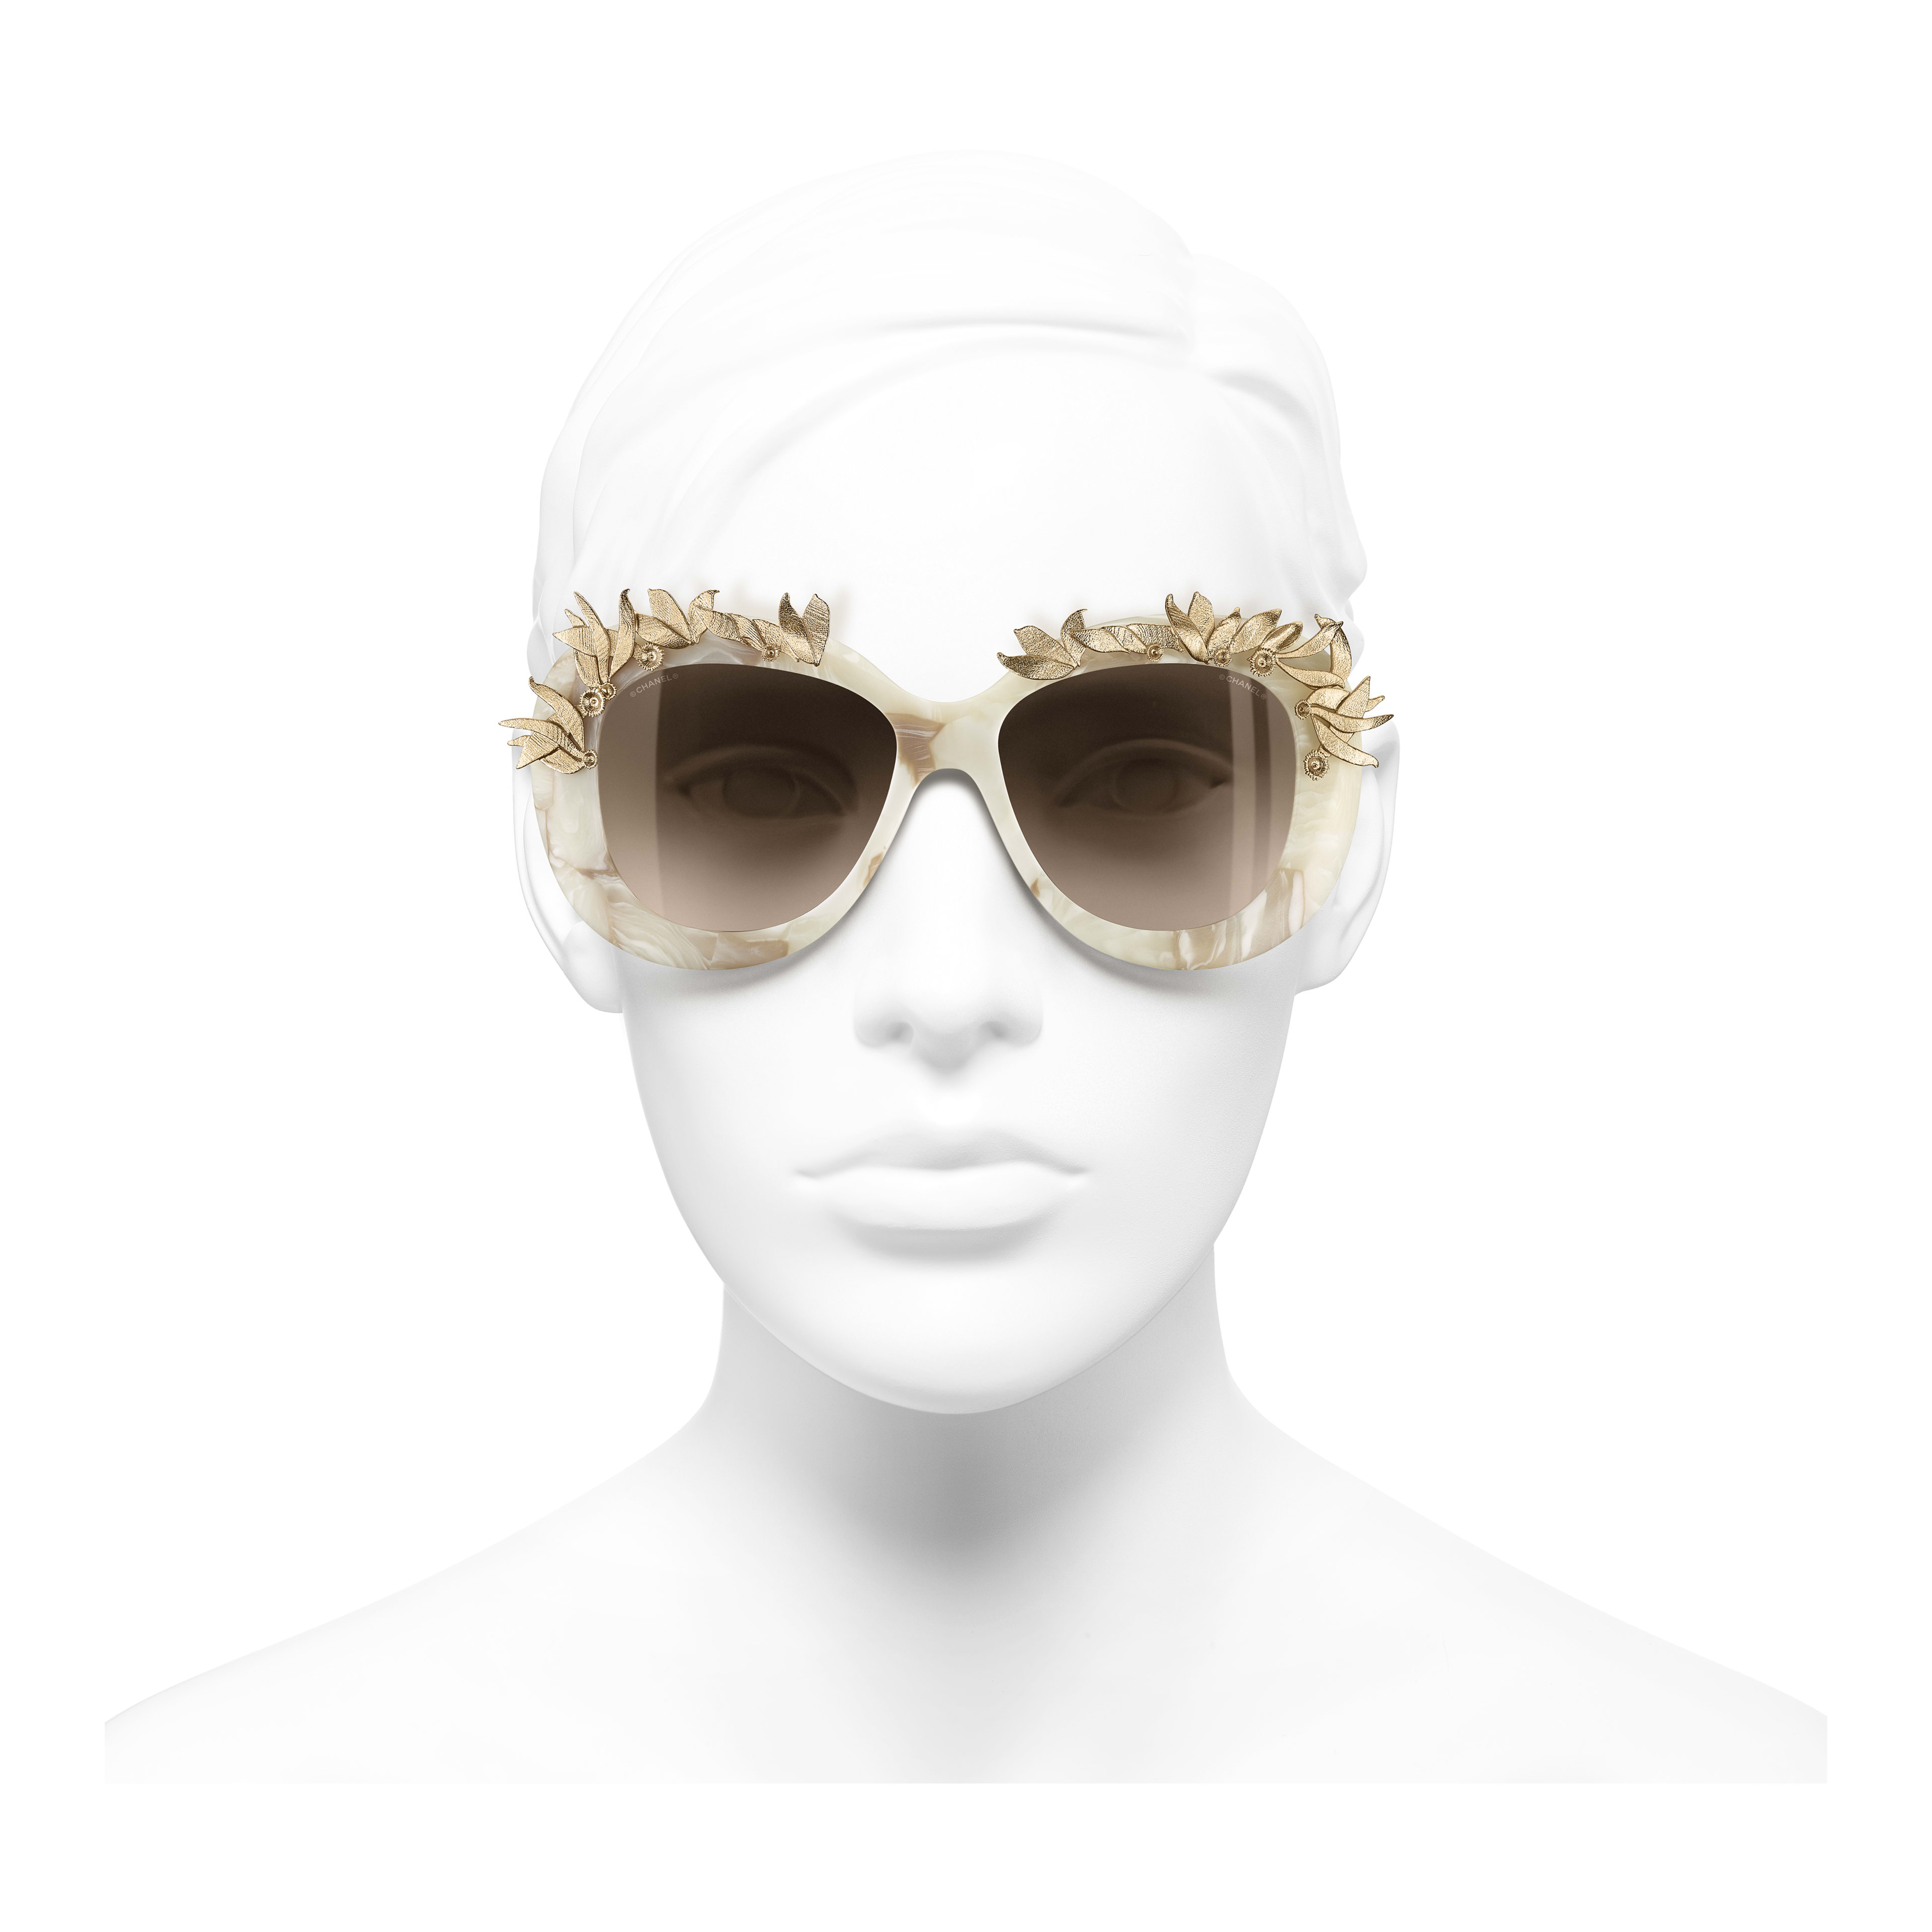 Oval Sunglasses Acetate & Metal White & Gold -                                                                     view 2 - see full sized version